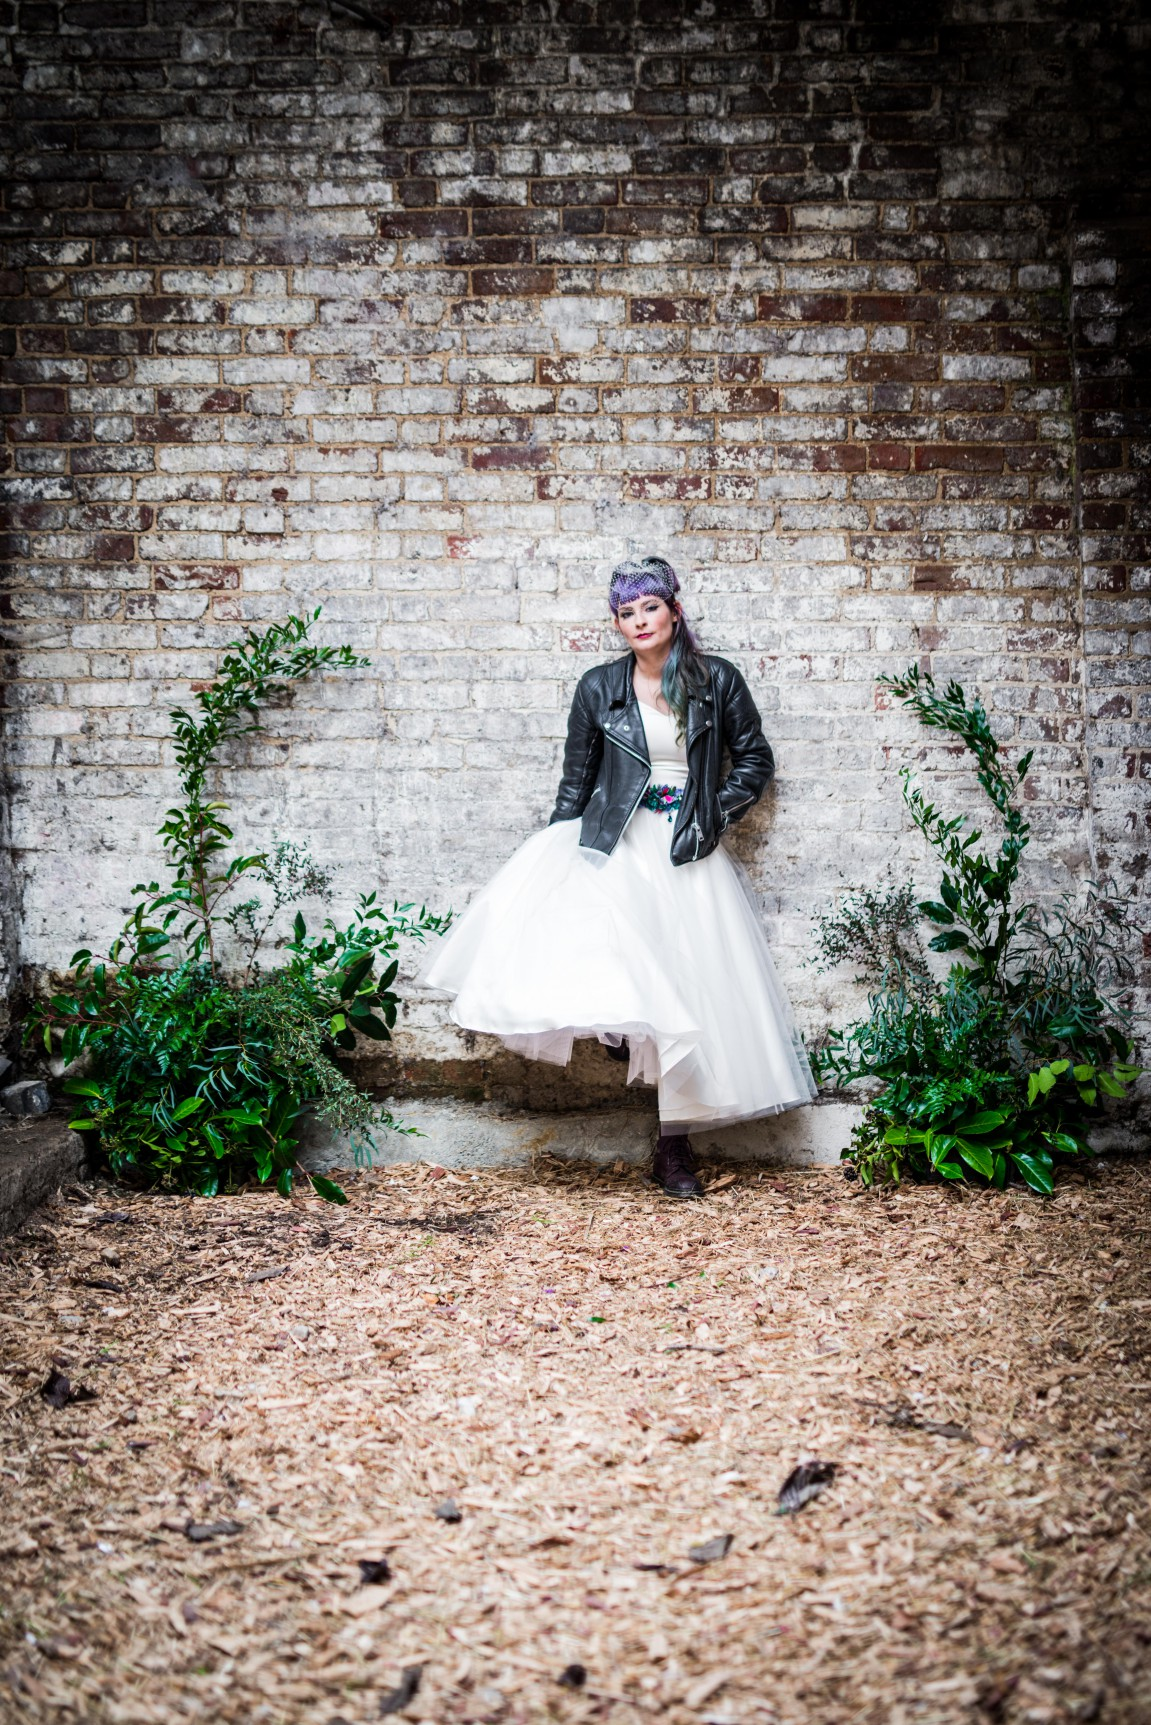 Peacock barns - alternative unconventional wedding photoshoot - rustic decadent - bride by barn wall